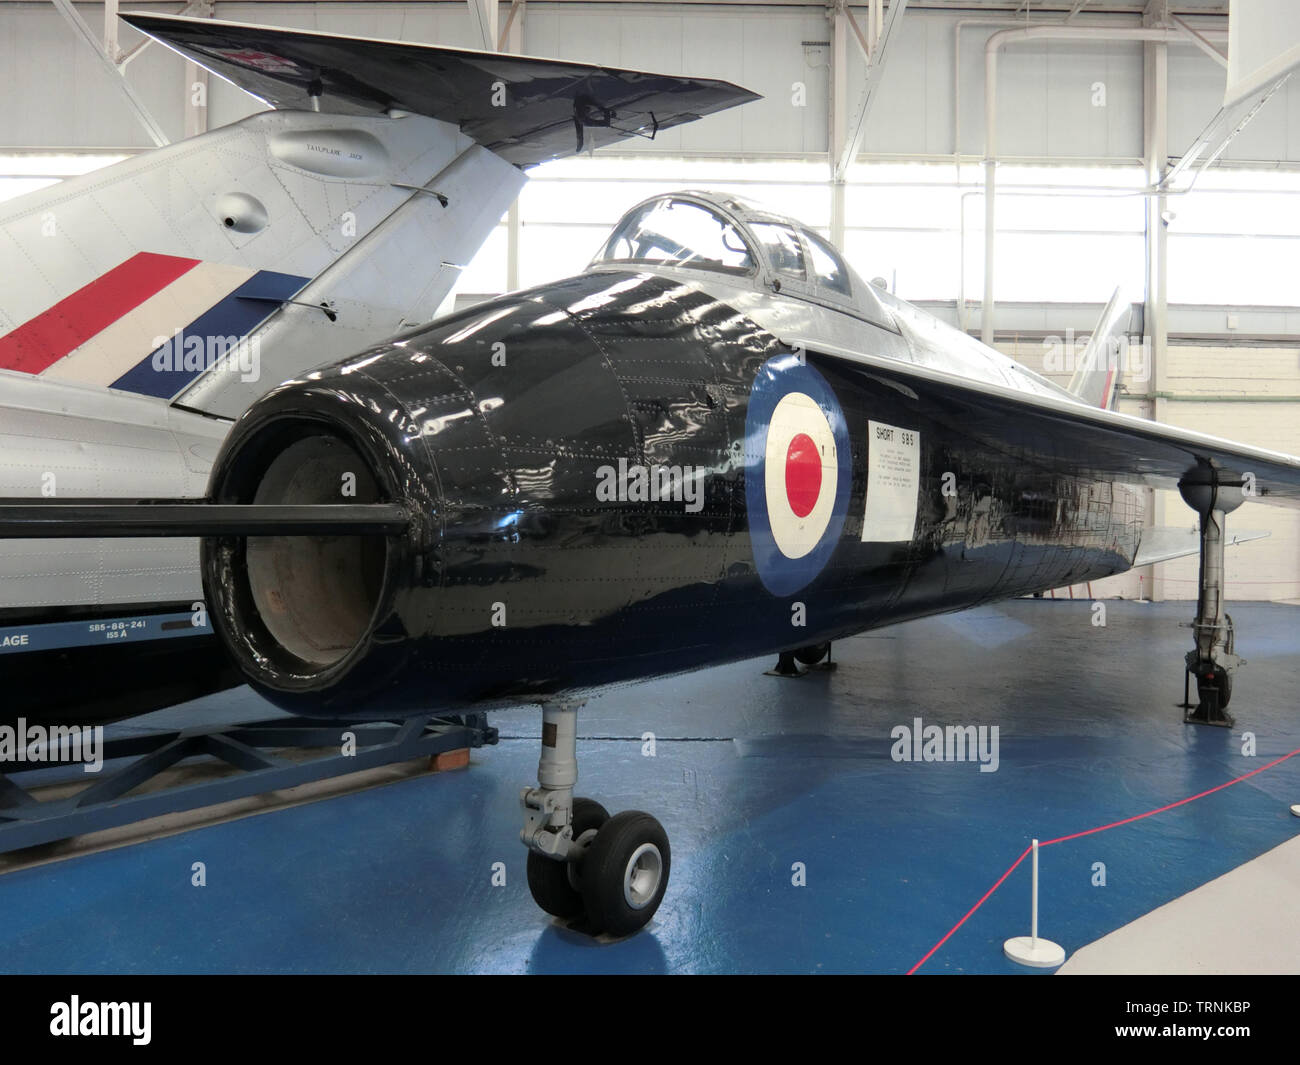 Short Brothers 1950s SB5 Experimental Research Jet Aircraft, UK - Stock Image